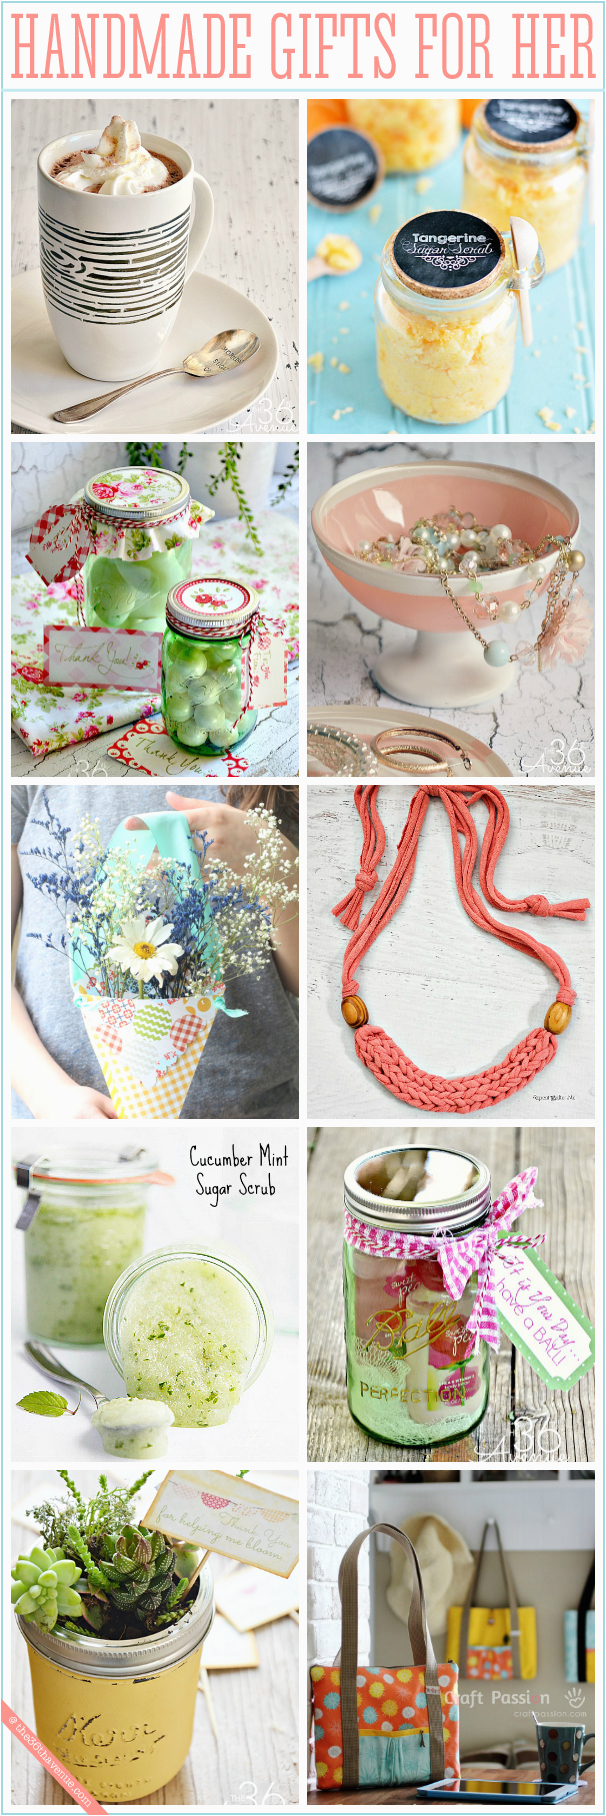 the 36th avenue handmade gifts for teachers the 36th